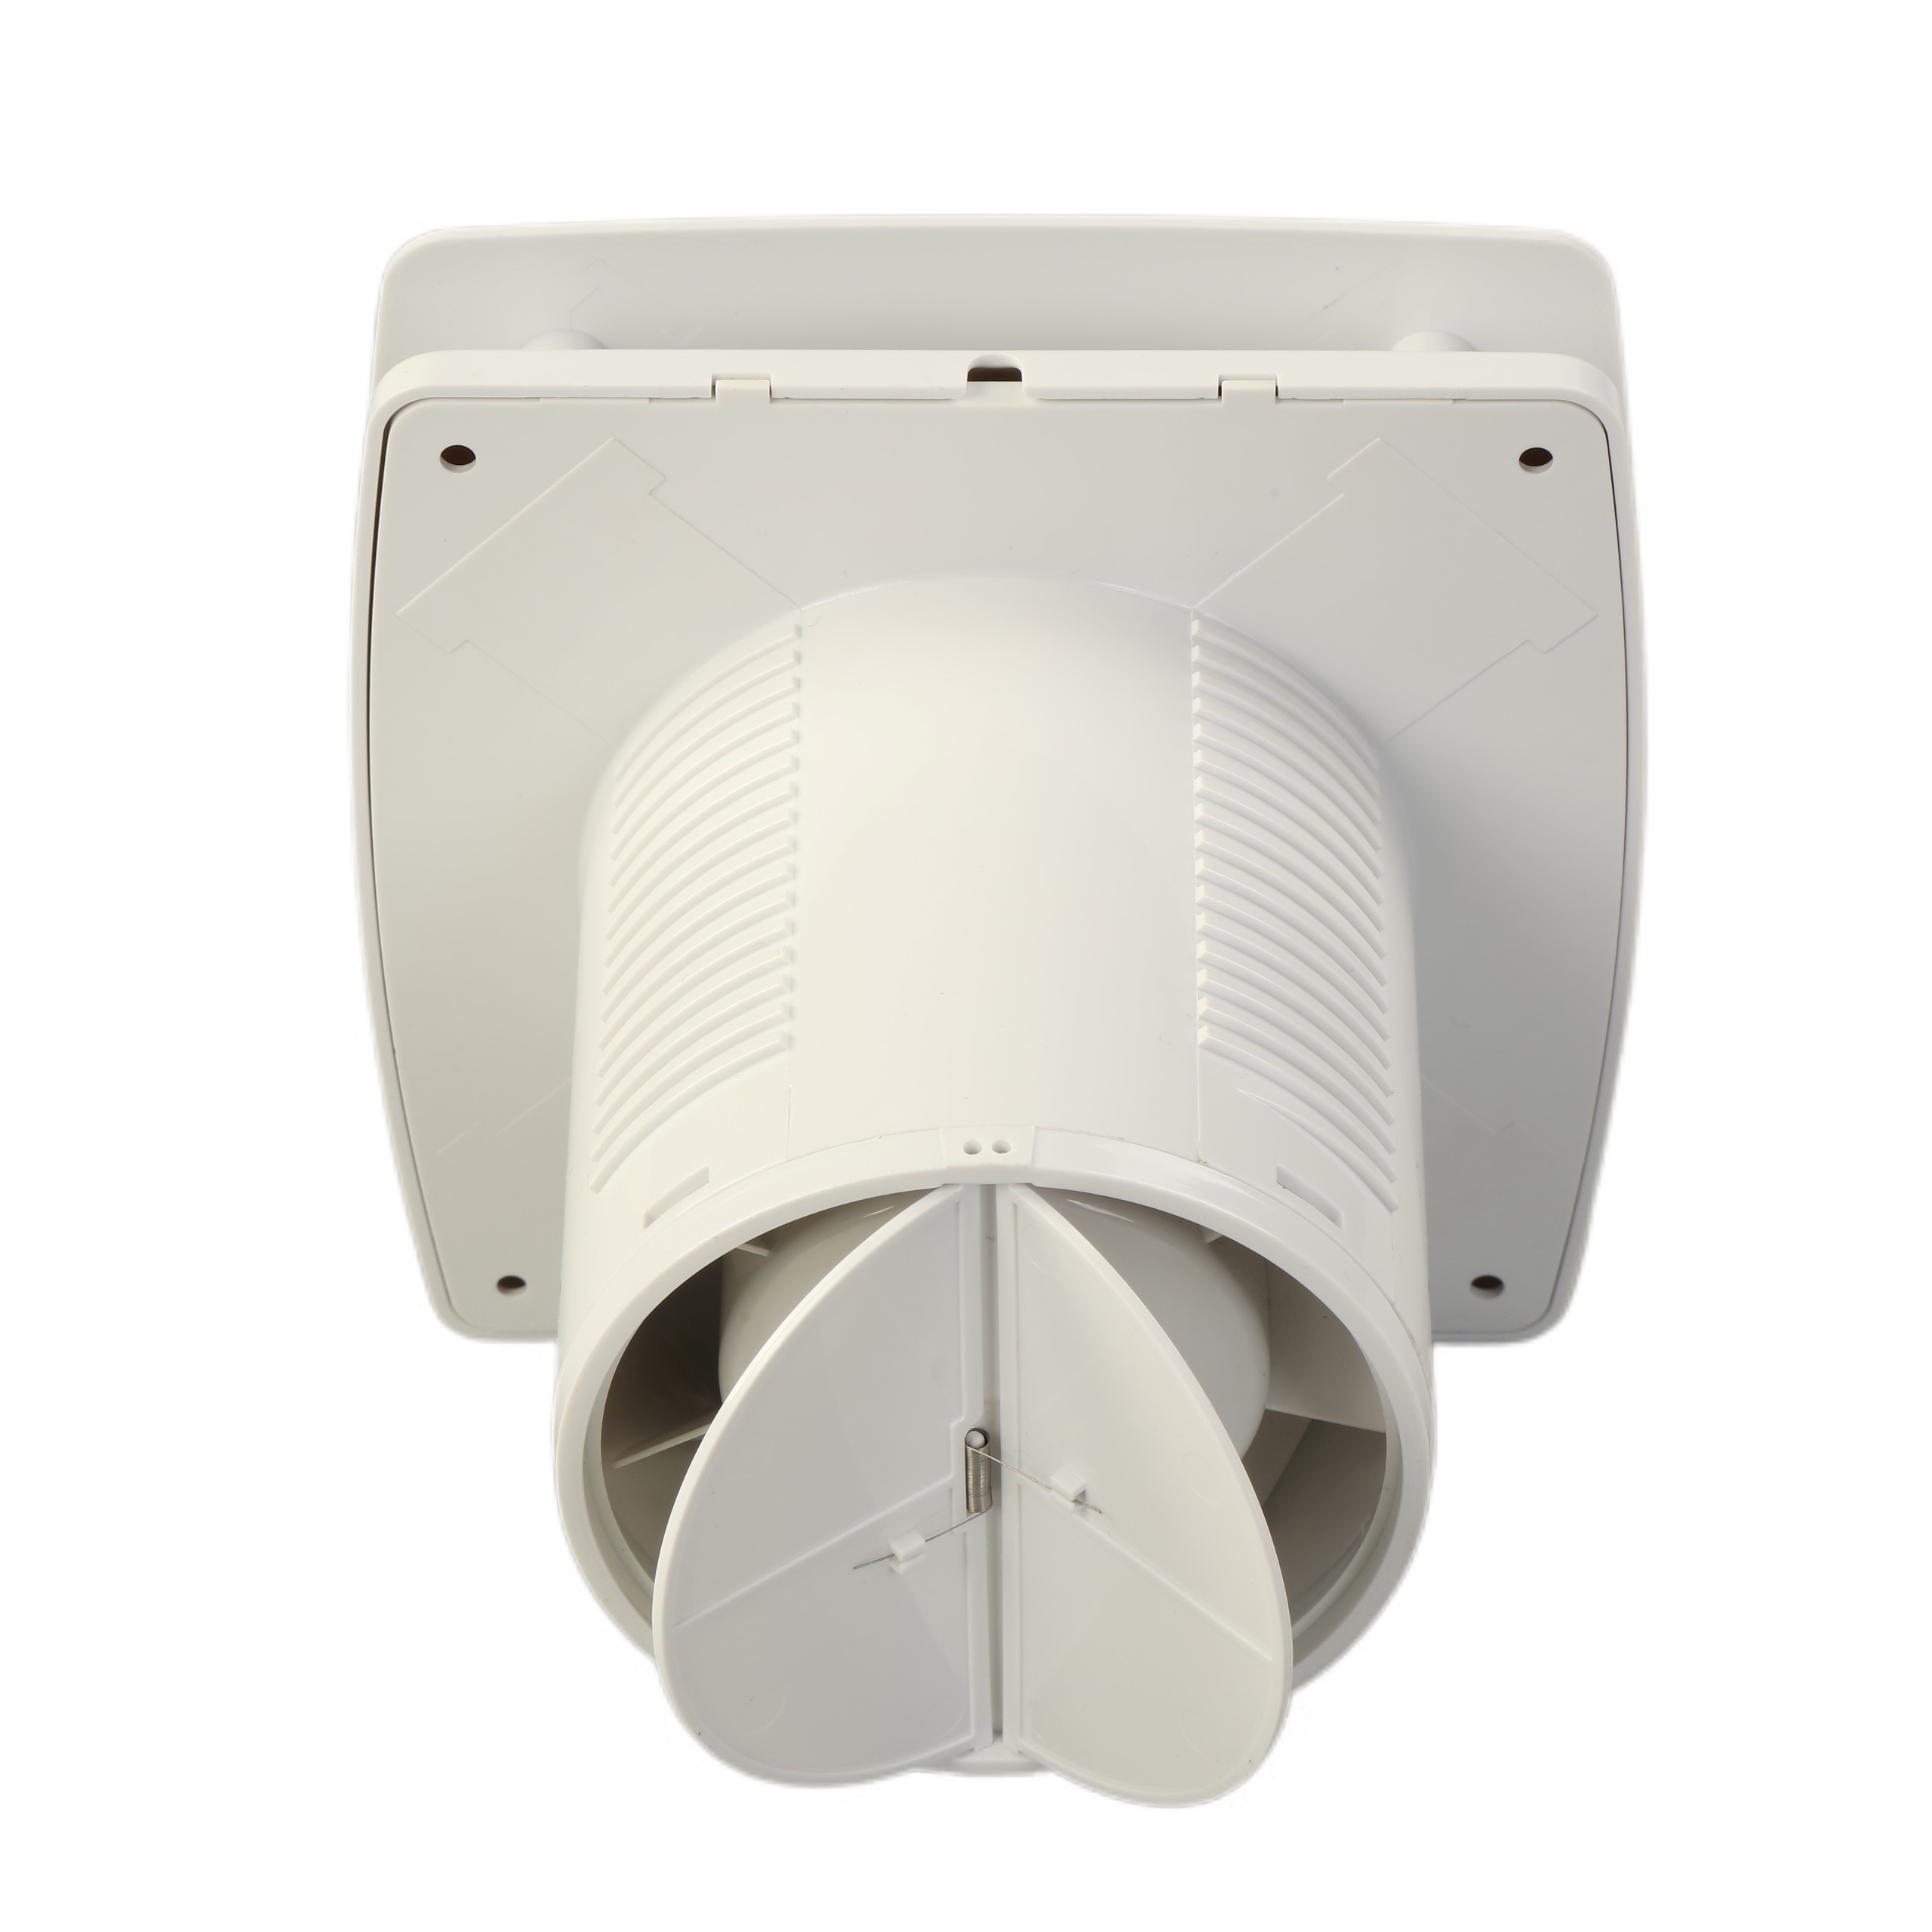 Bathroom Household Plastic Humidity Control Wall Mount Fans